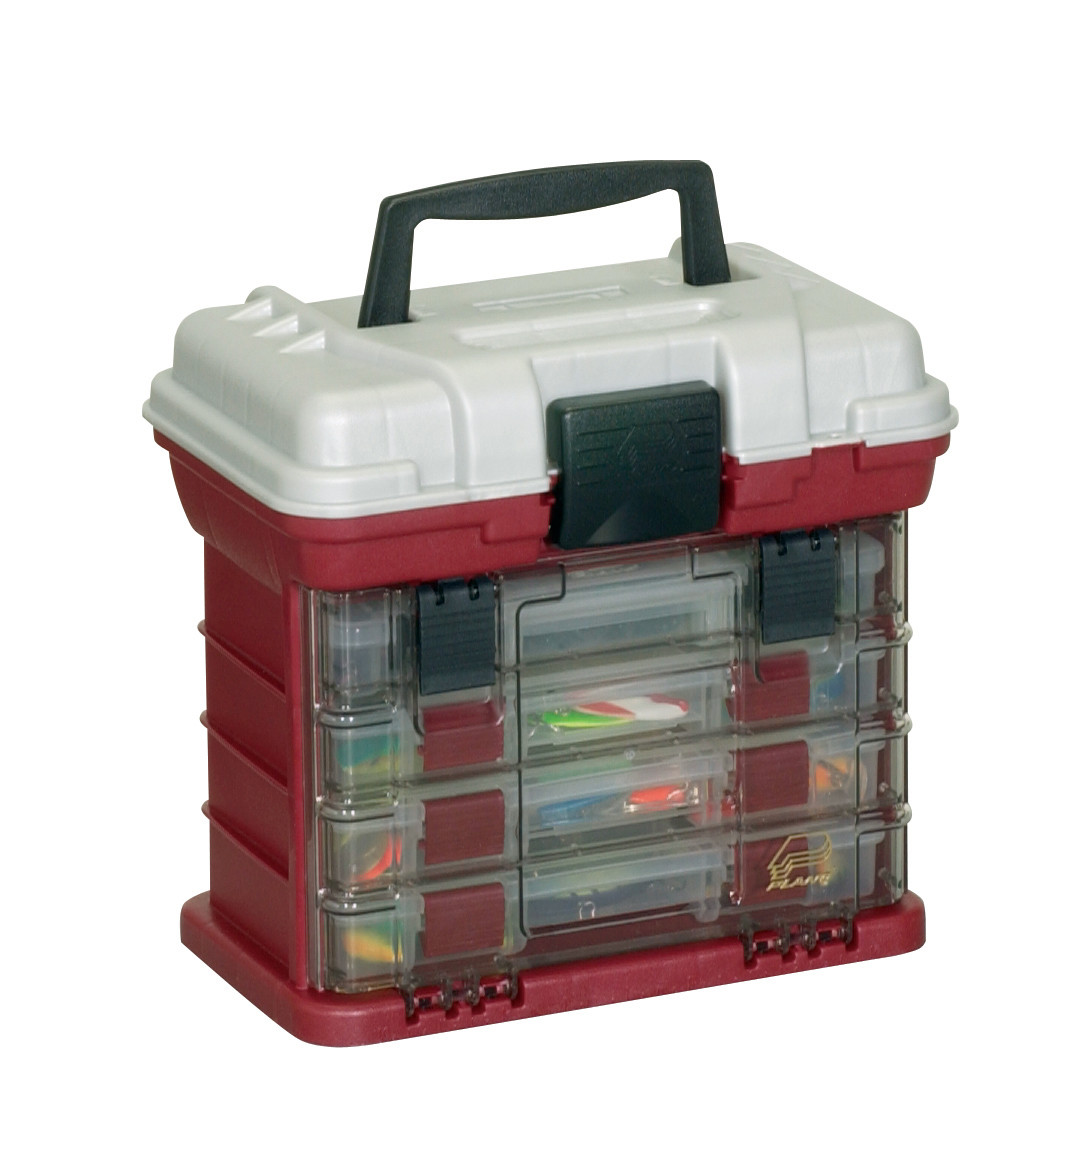 Plano 1354 tackle box tackle storage system fishing tackle box for Plano fishing tackle boxes